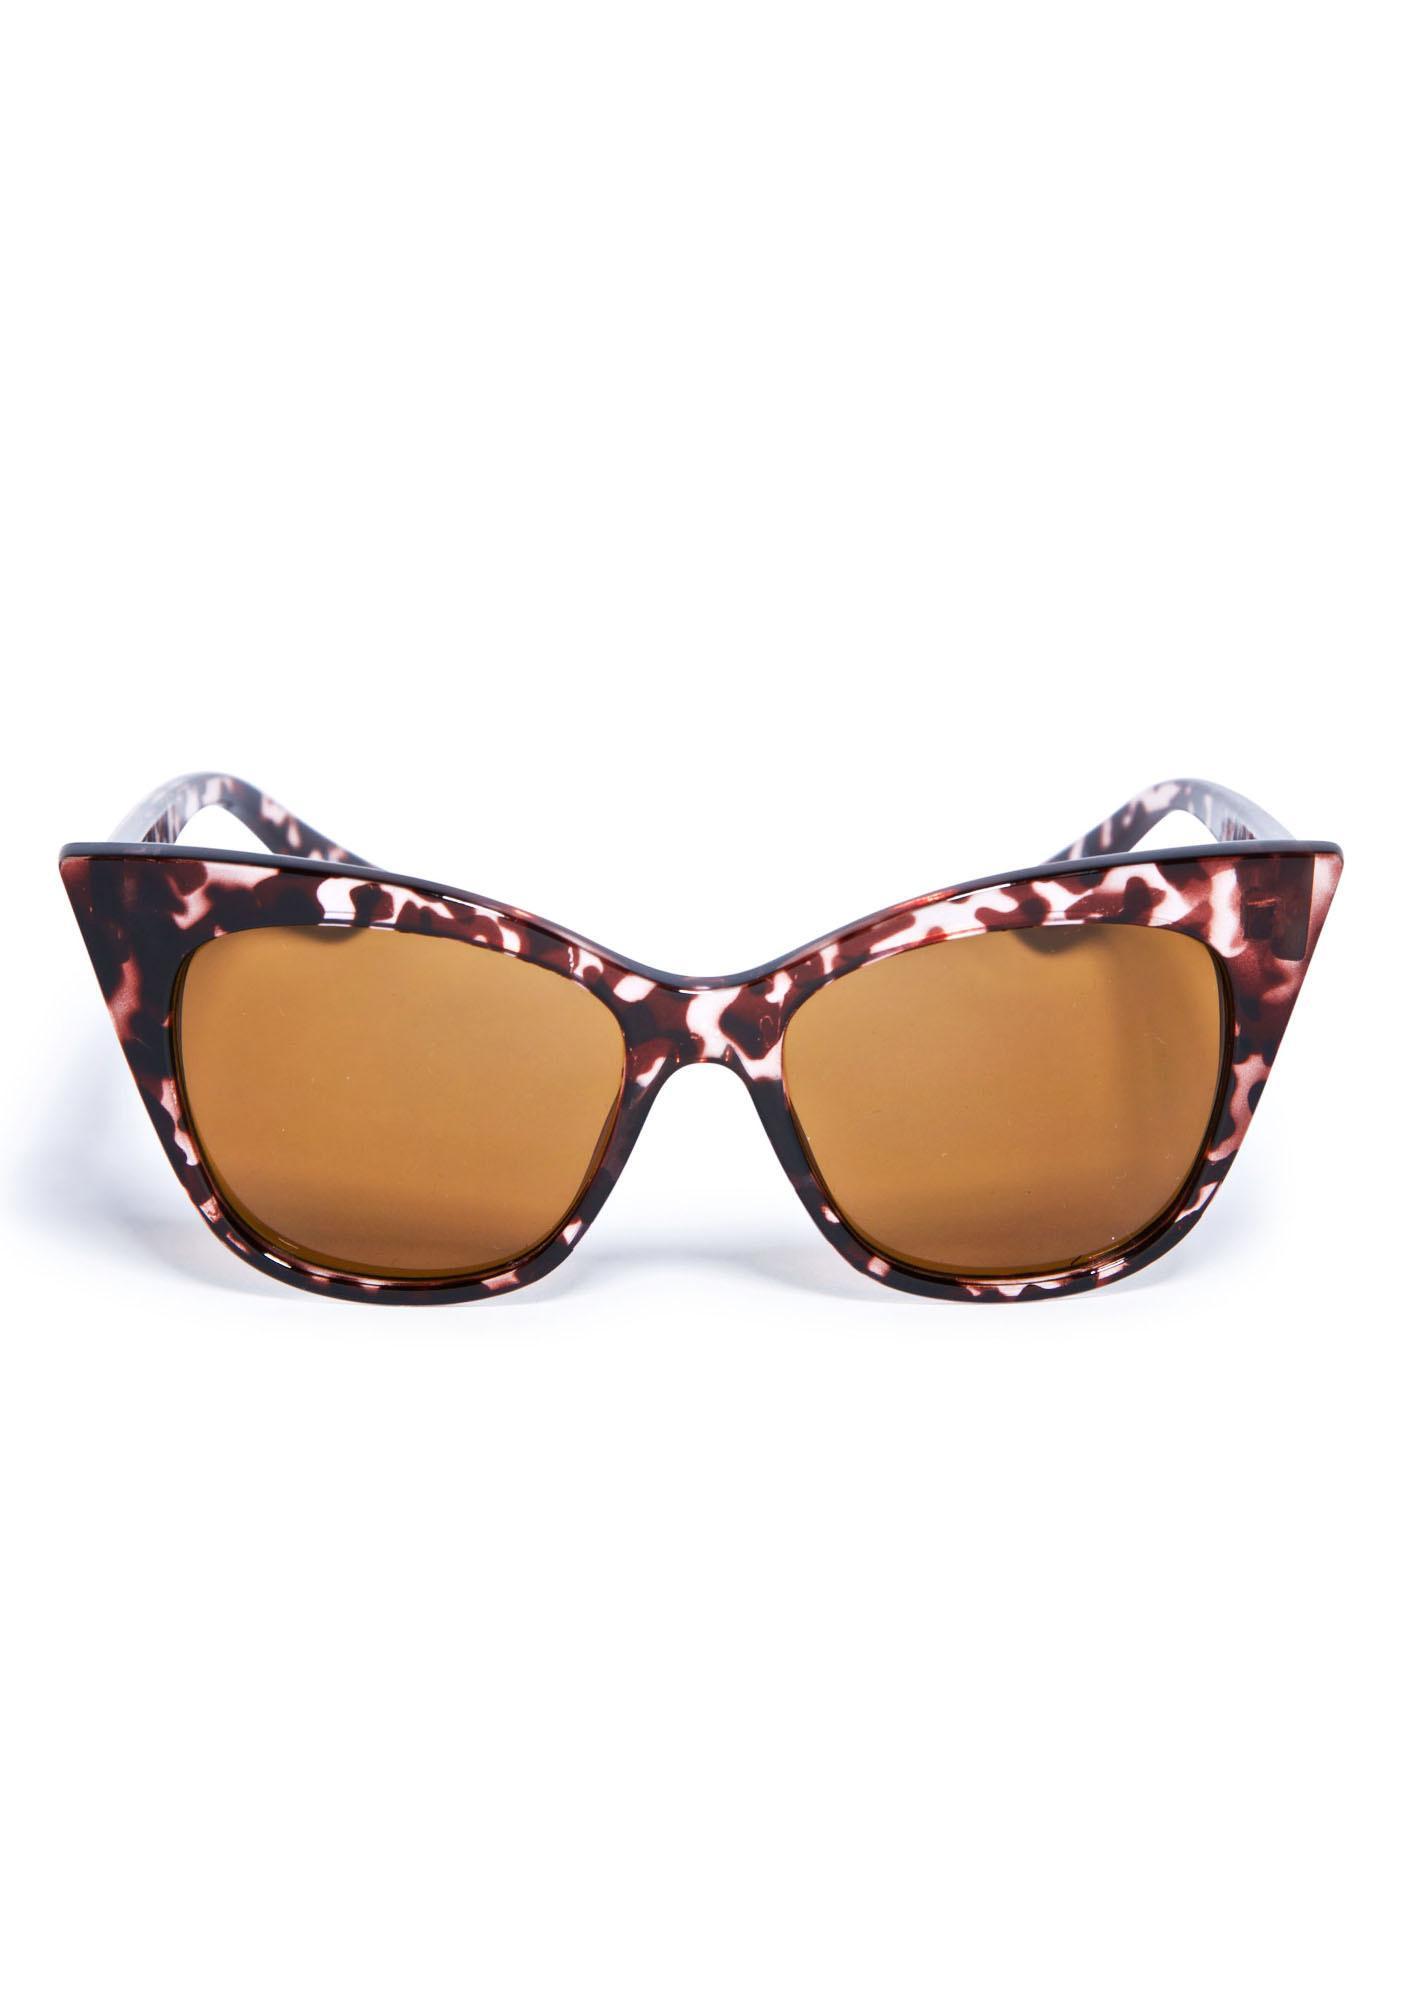 Quay Eyeware Modern Love Sunglasses